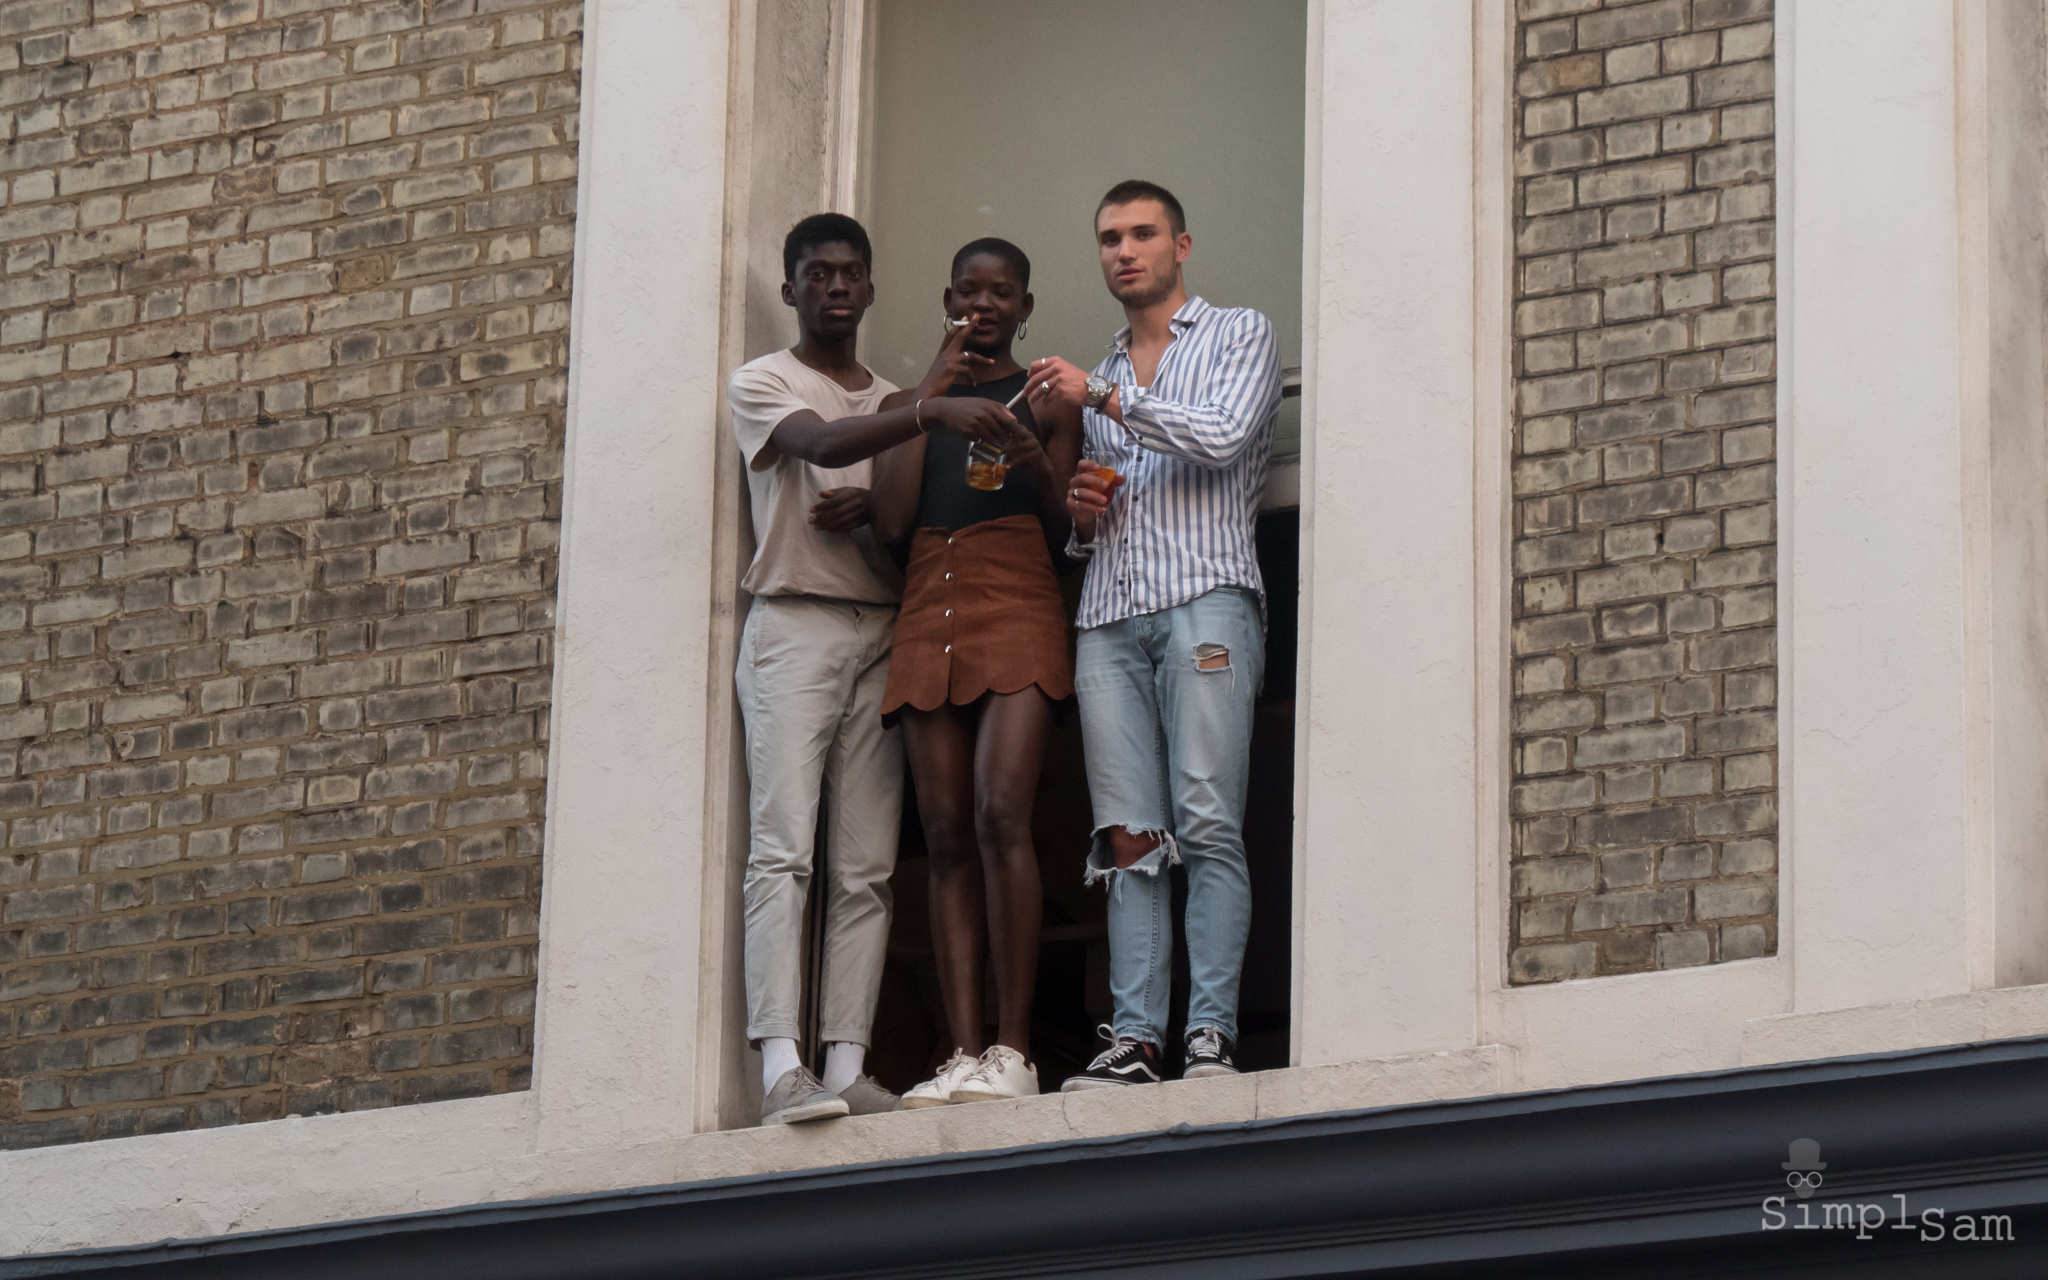 Notting Hill Carnival 2017 - Ledge 'ends